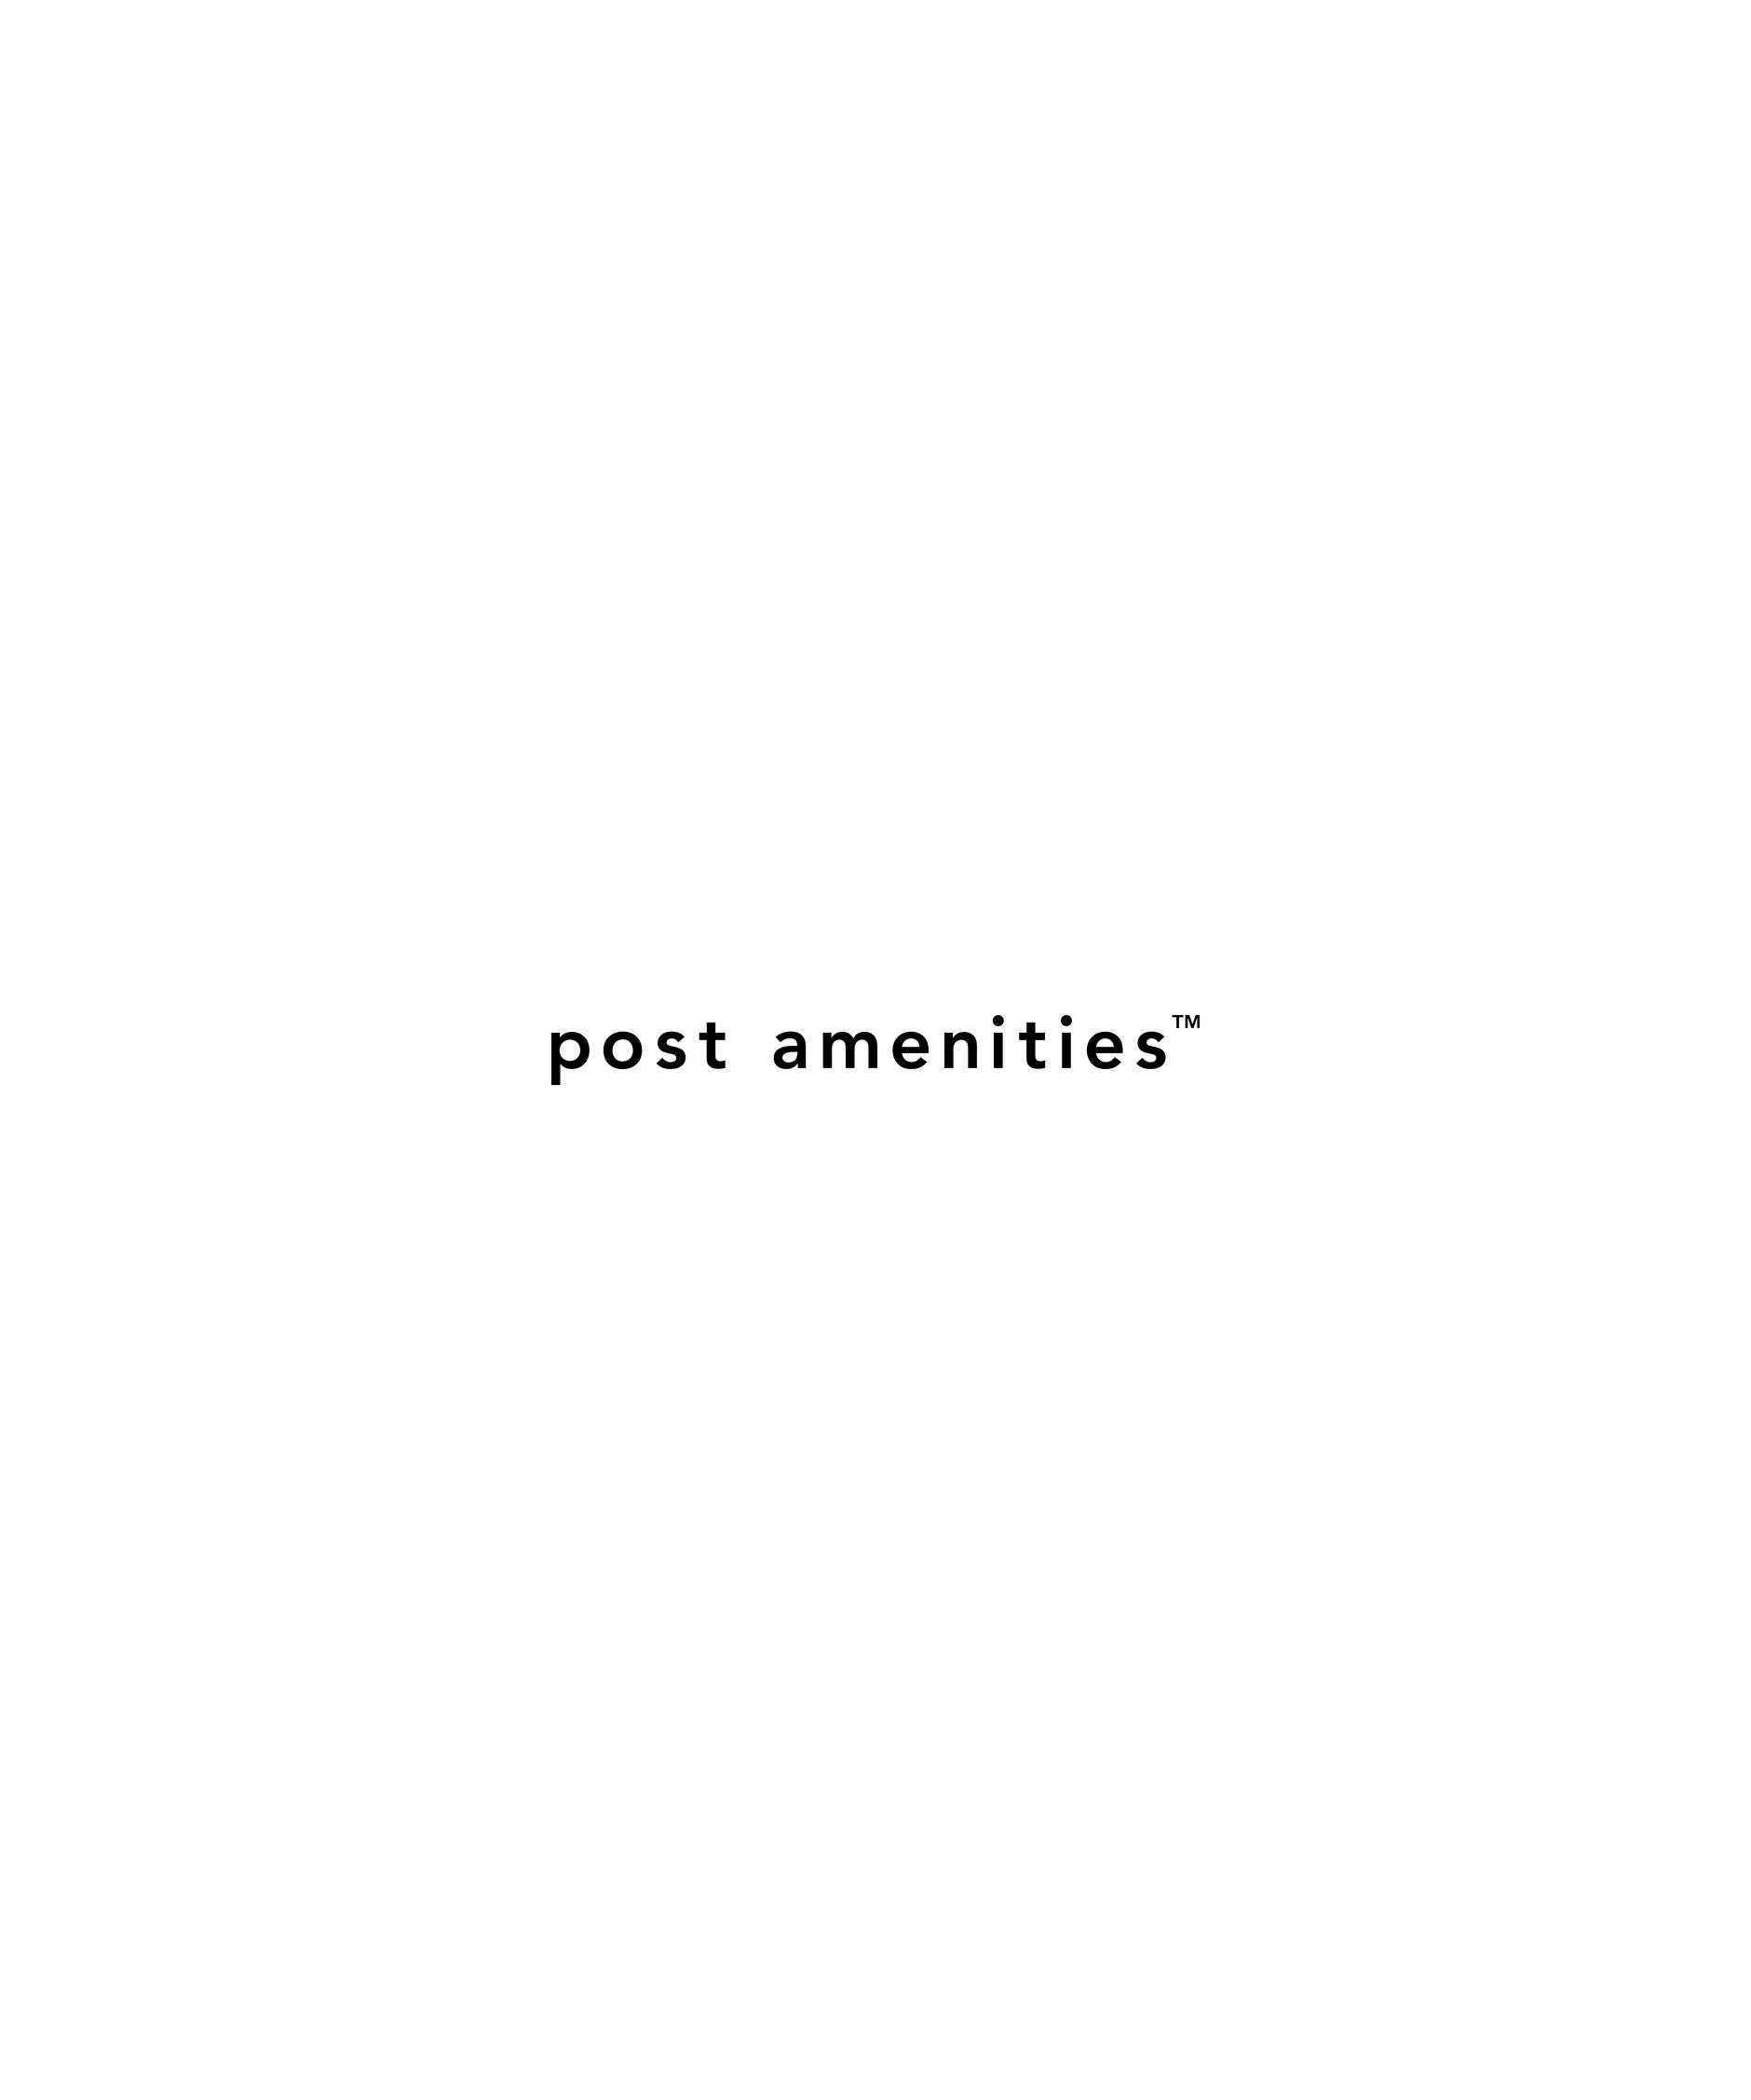 post amenities